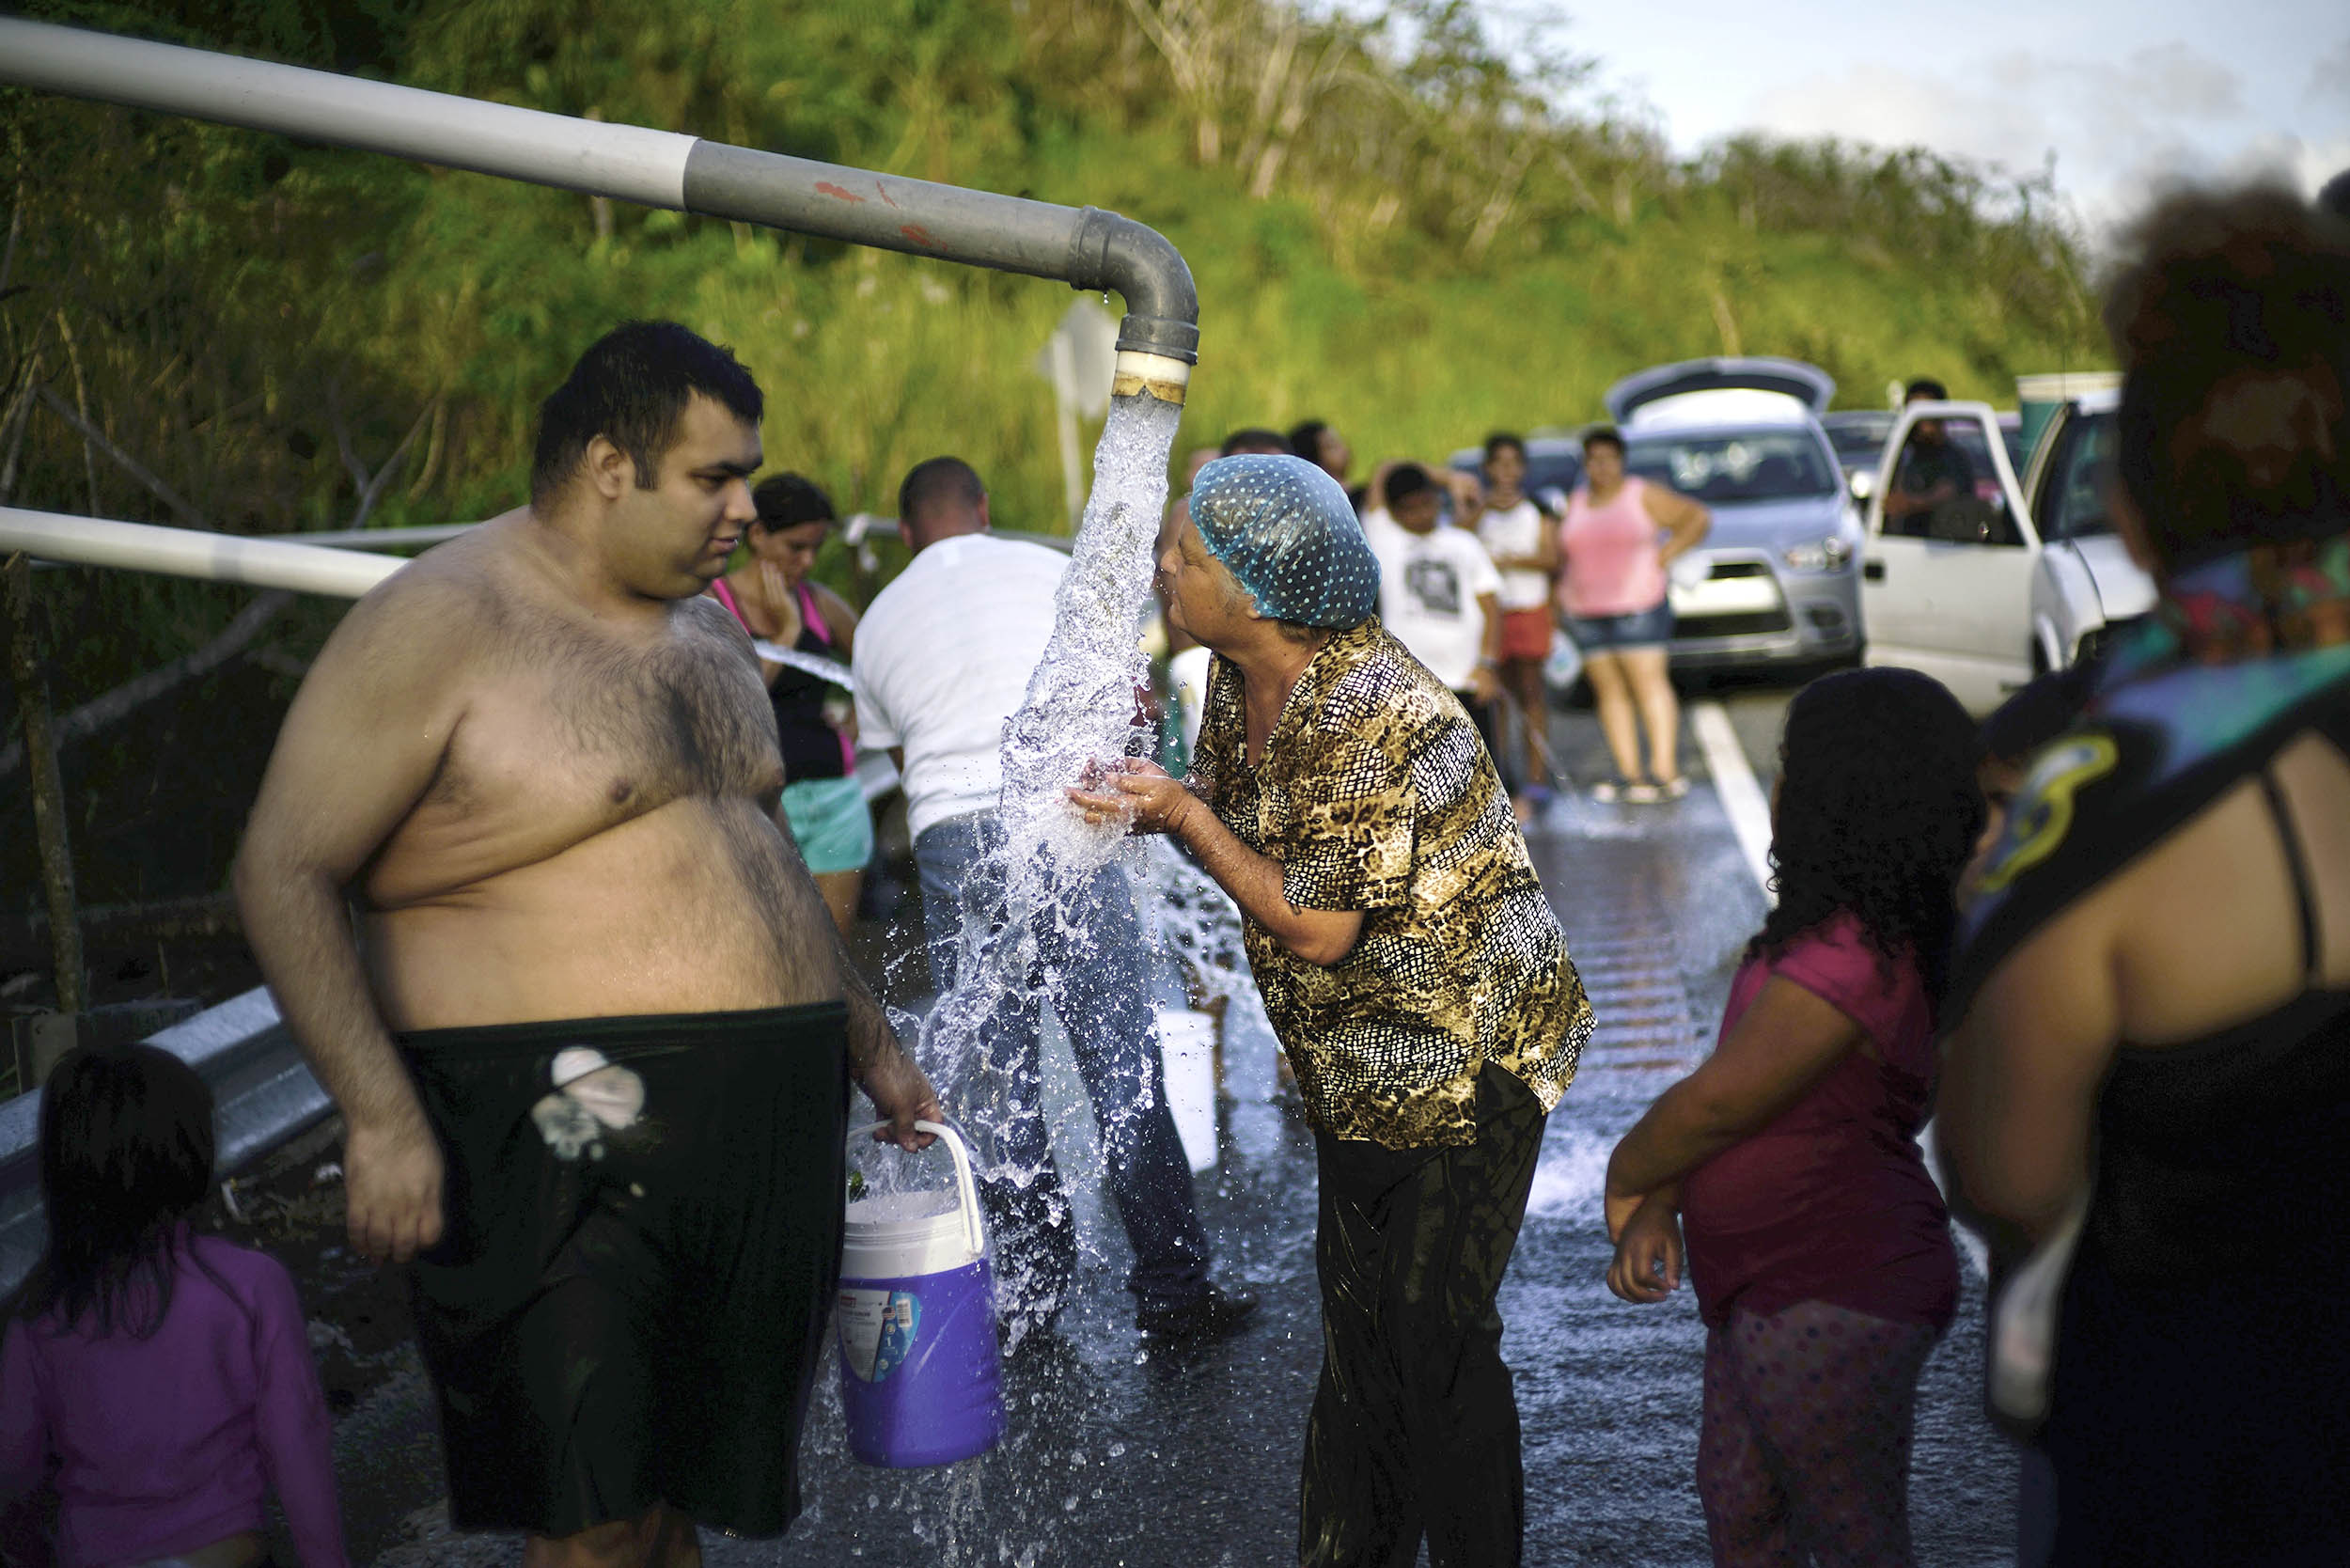 Image: Water Shortage in Puerto Rico